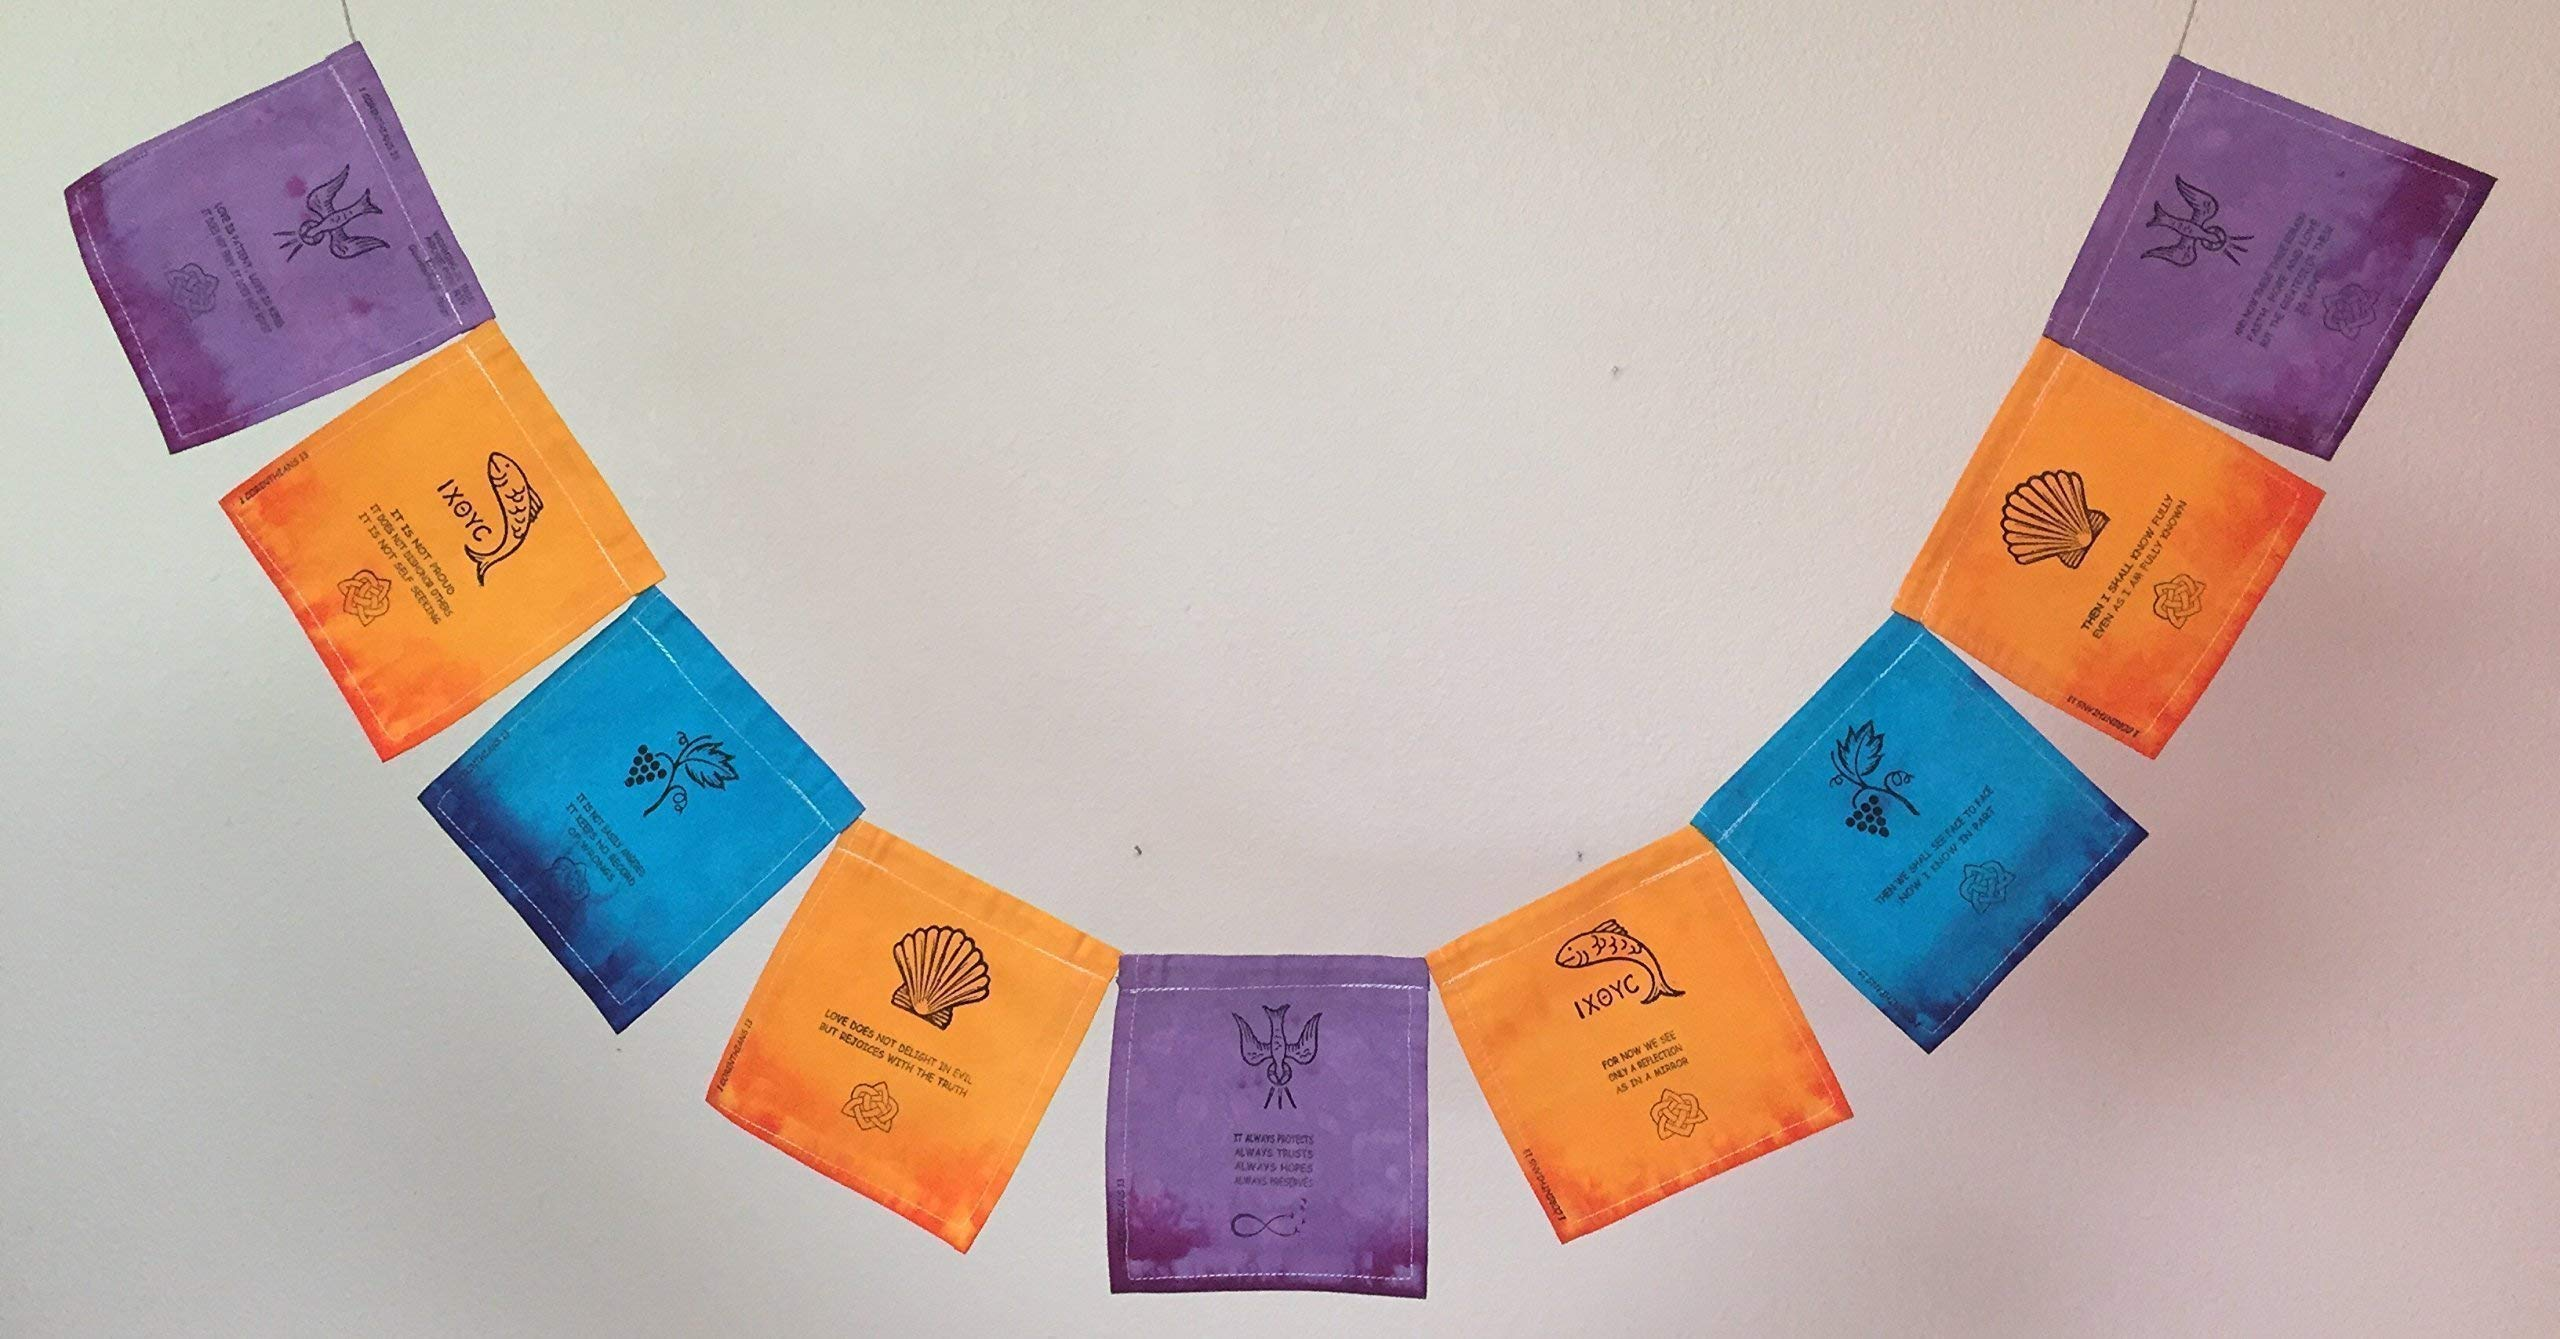 1 Corinthians Christian Prayer Flag''Love is patient, Love is kind.''. All proceeds to families in Mexico.